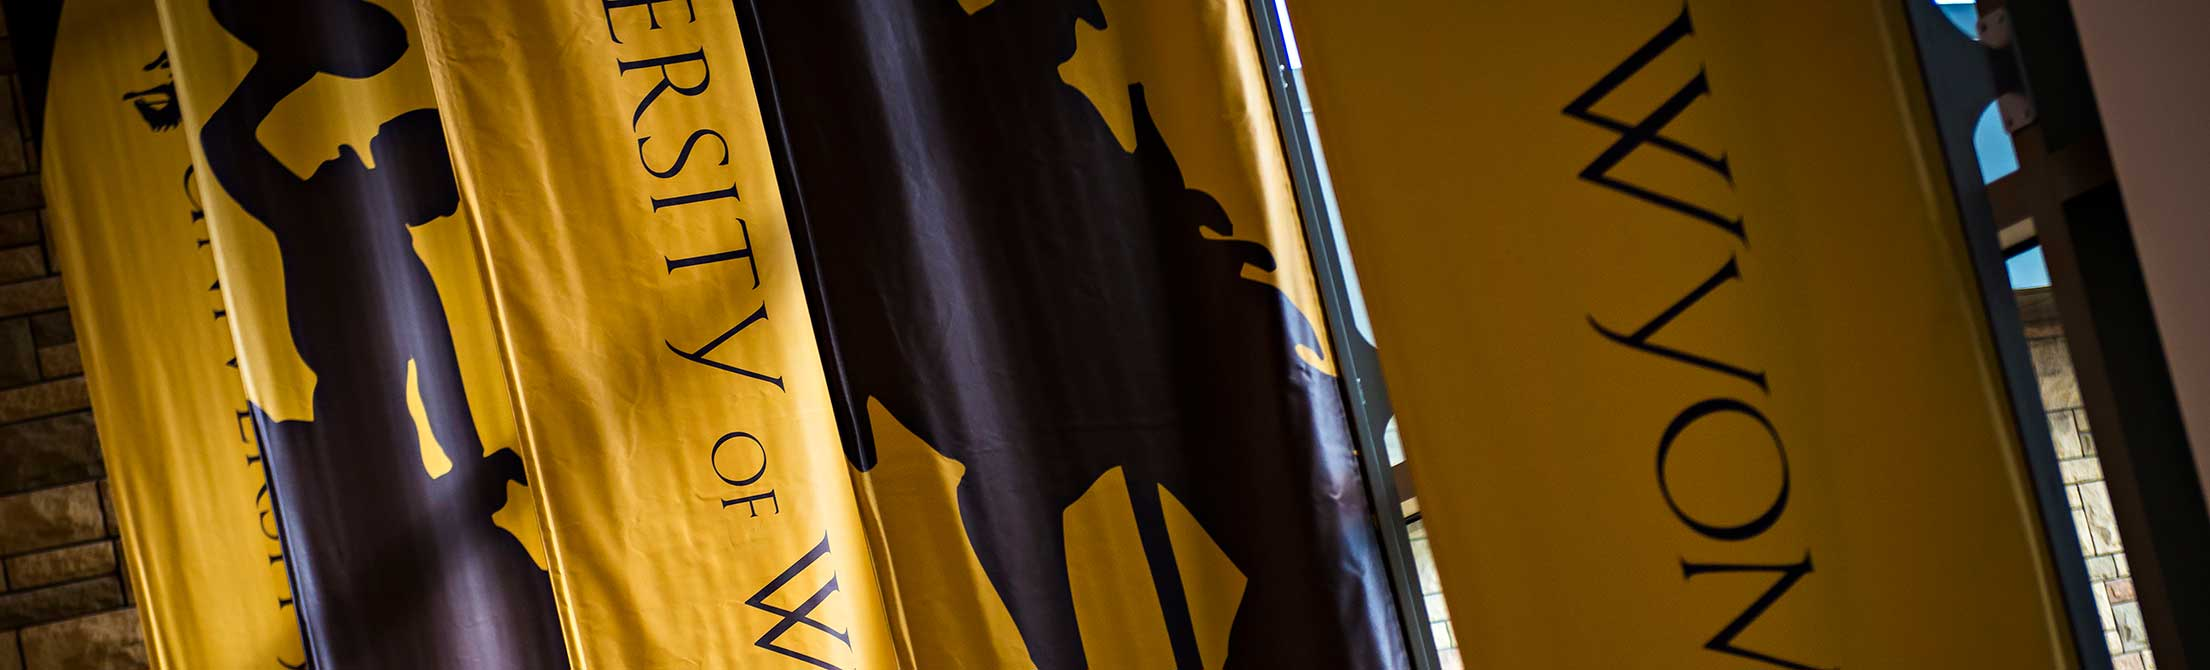 University of Wyoming gold banners in the Gateway Center on campus